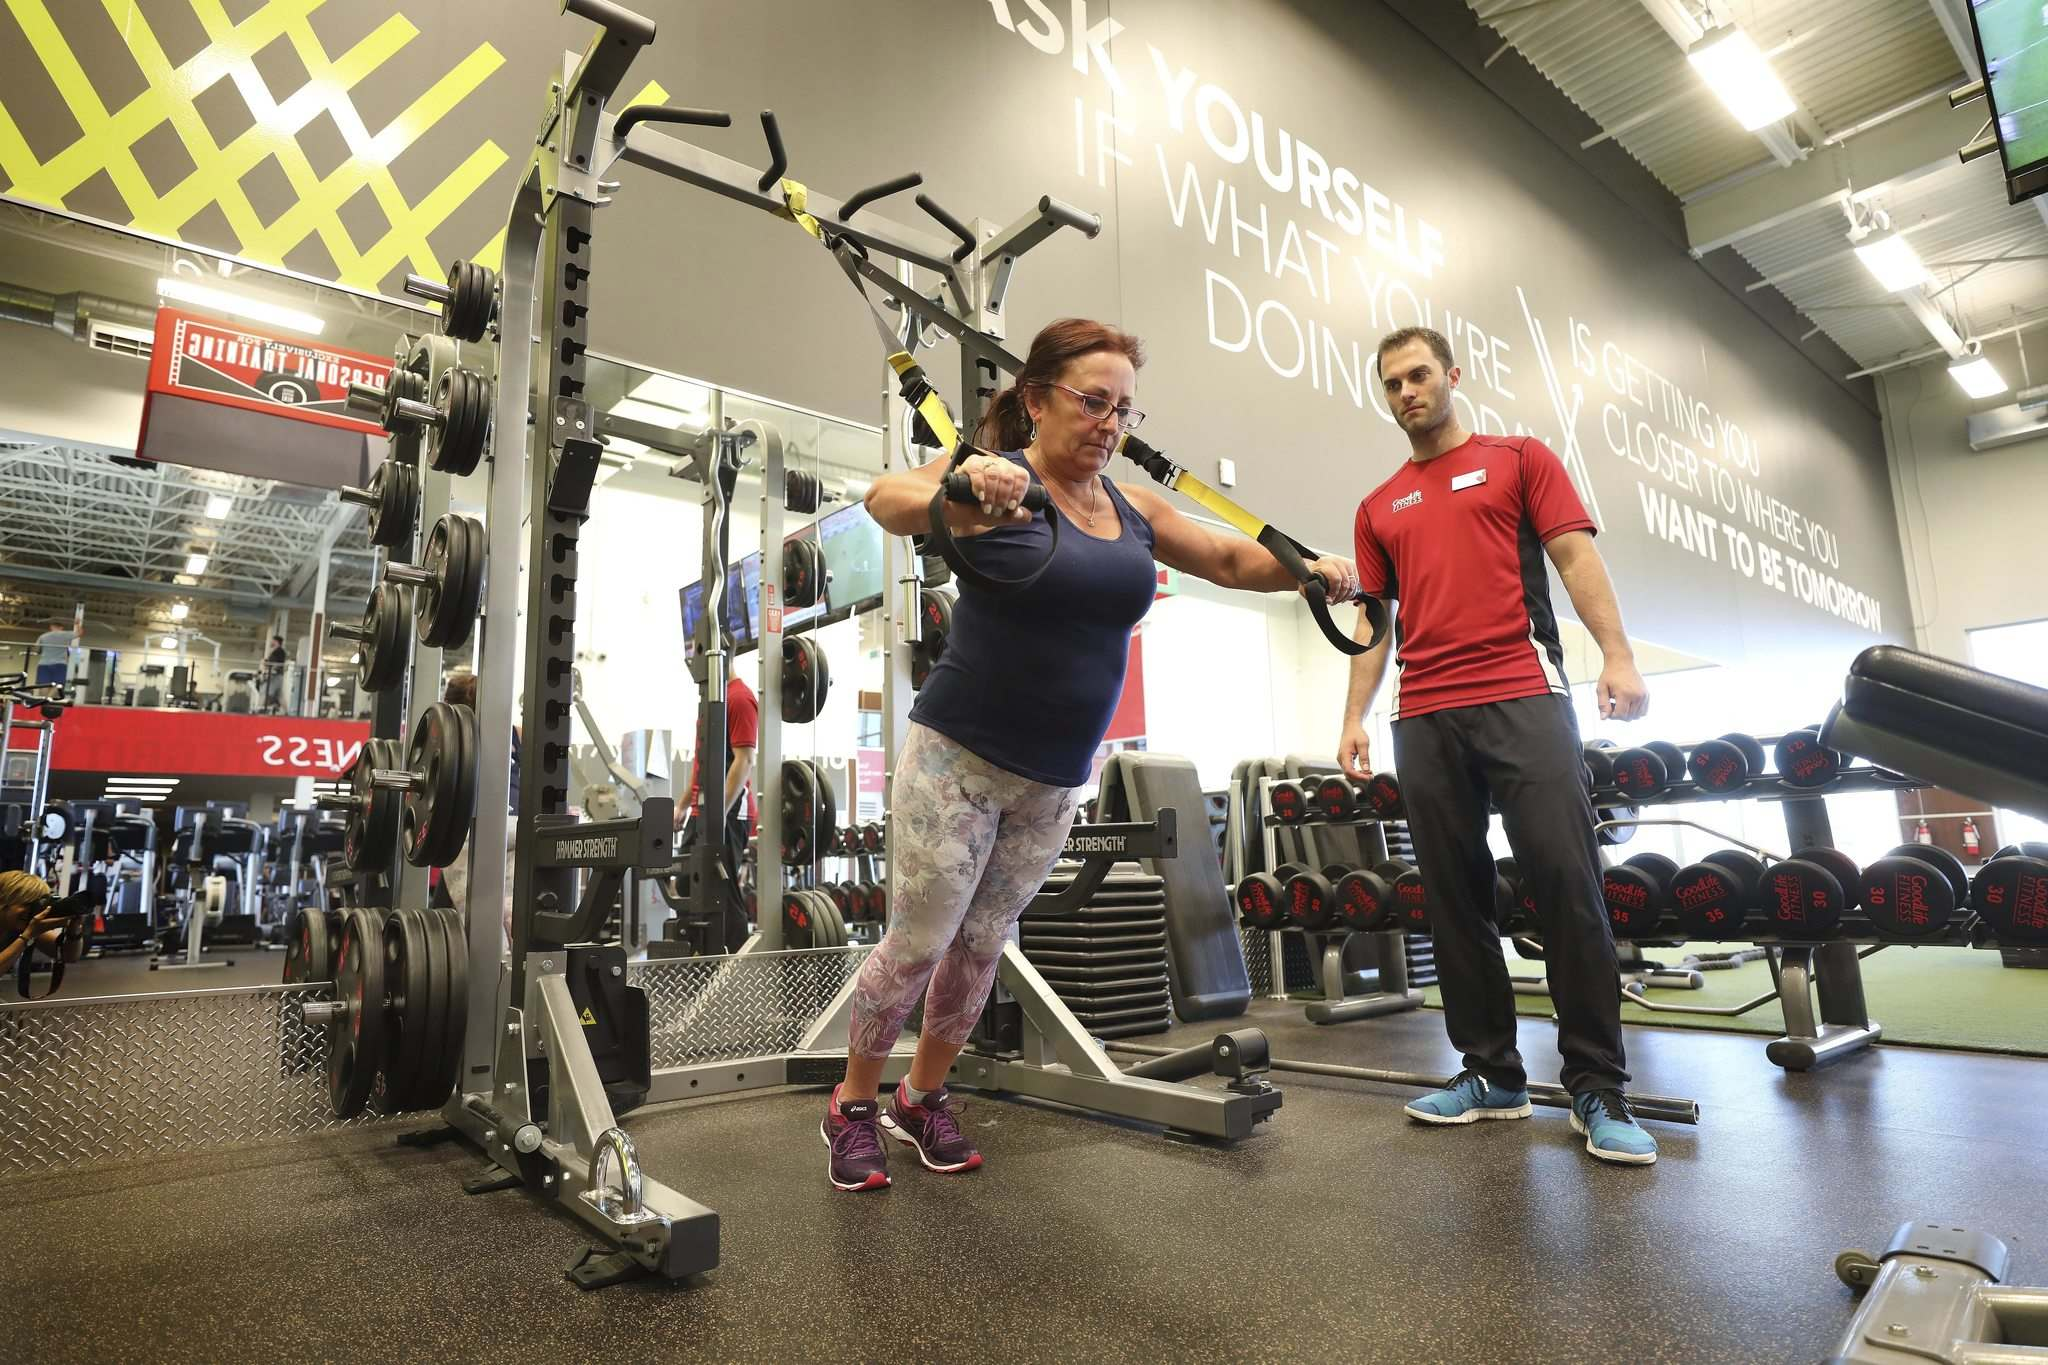 PHOTOS BY RUTH BONNEVILLE / WINNIPEG FREE PRESS</p><p>Carmen Yaeger works out at GoodLife Fitness Winnipeg Regent West with the help of Cameron Makarchuk, her personal trainer.</p>